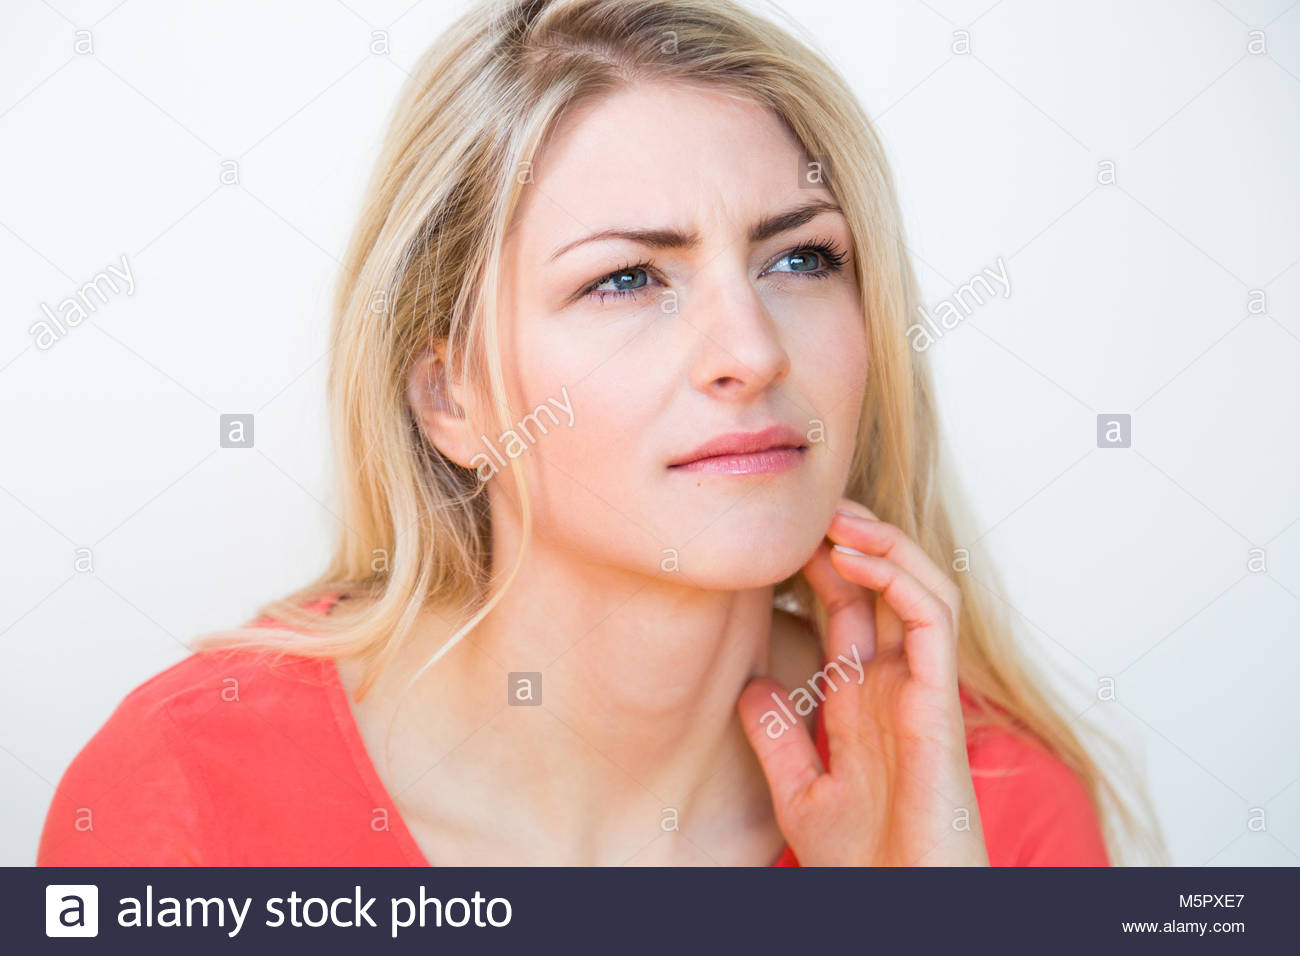 Young Woman with Hand in Hair Looking Perplexed - Stock Image